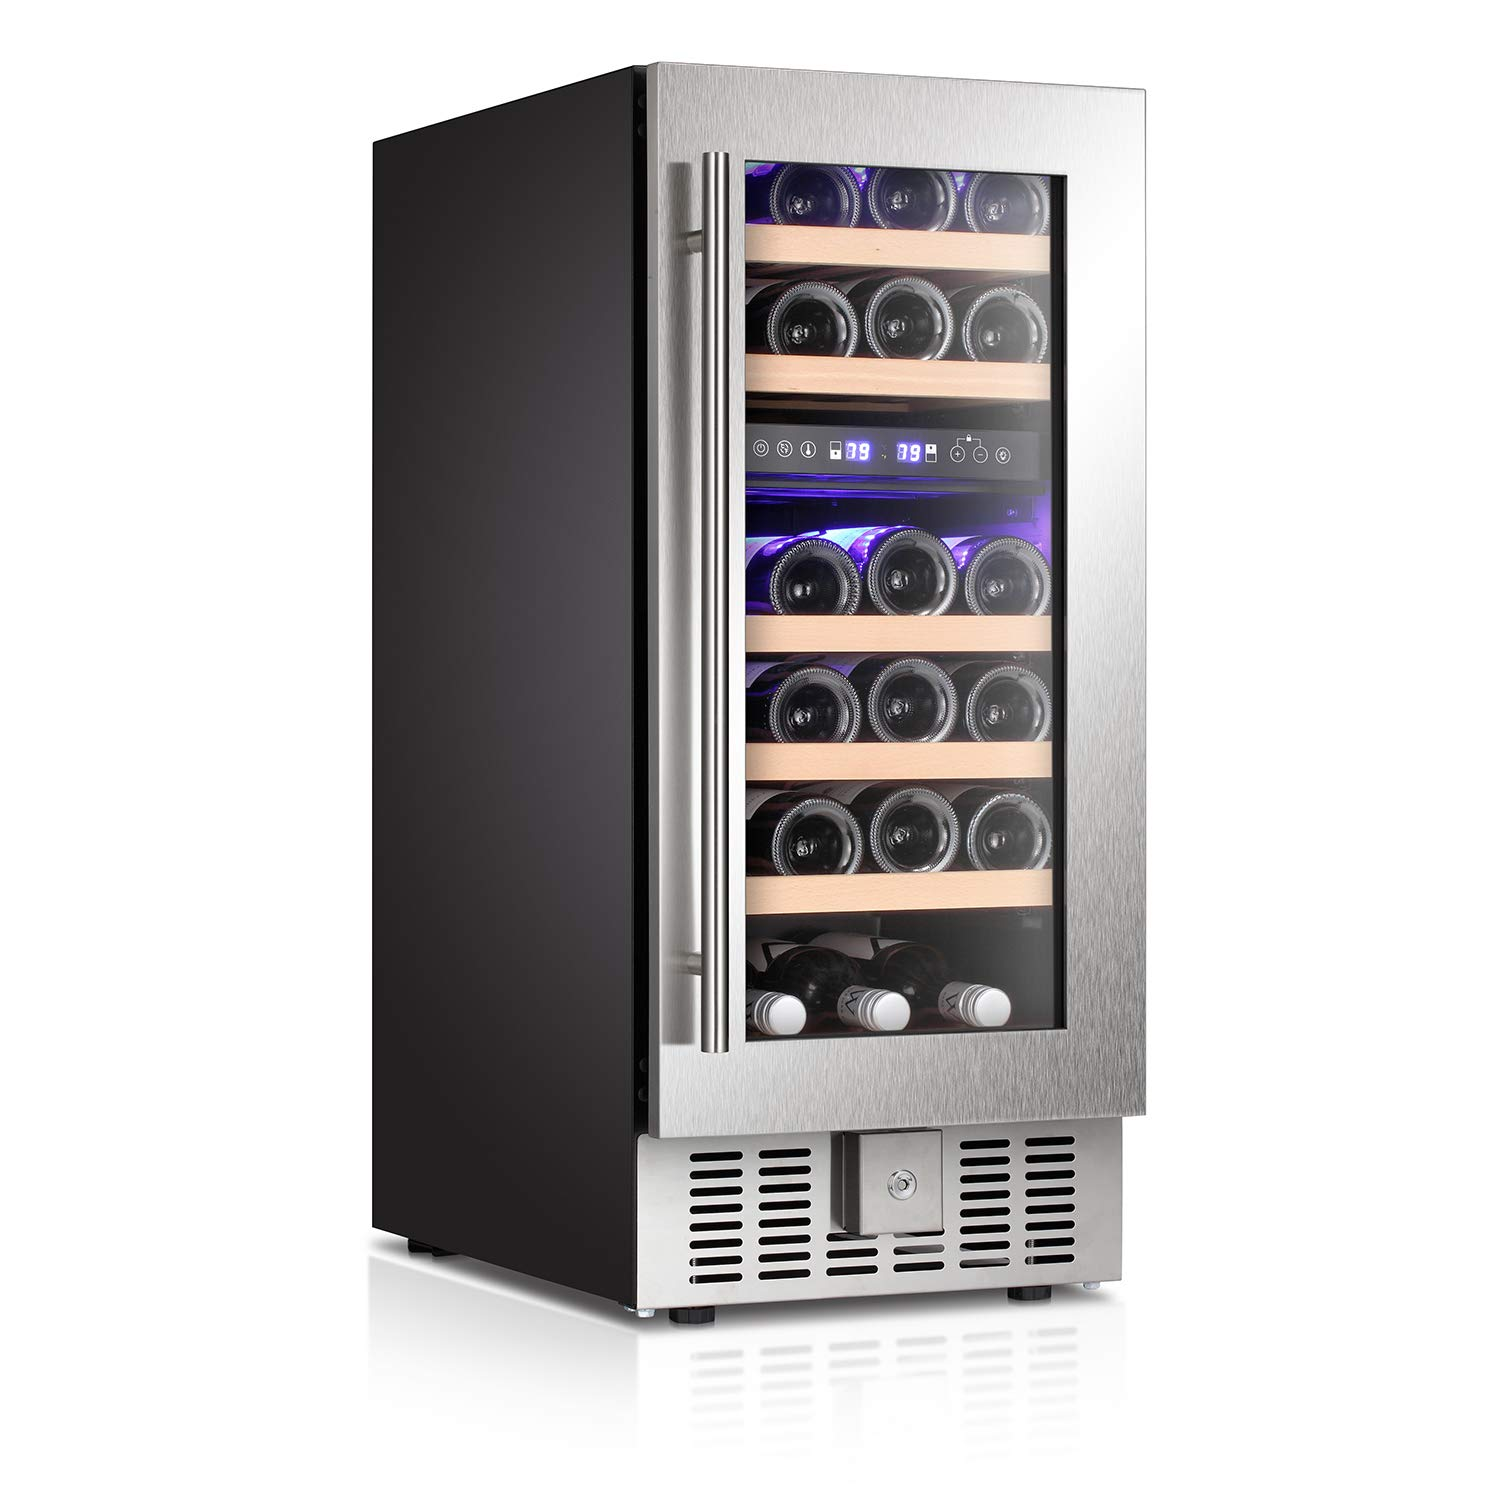 Antarctic Star Wine Cooler Refrigerator Fridge 28 Bottles 15'' Dual Zone Wine Cellar Built-in Freestanding Wine Chiller with Stainless Steel & Digital Memory Temperature Control/Wood Shelves/Silver by Antarctic Star